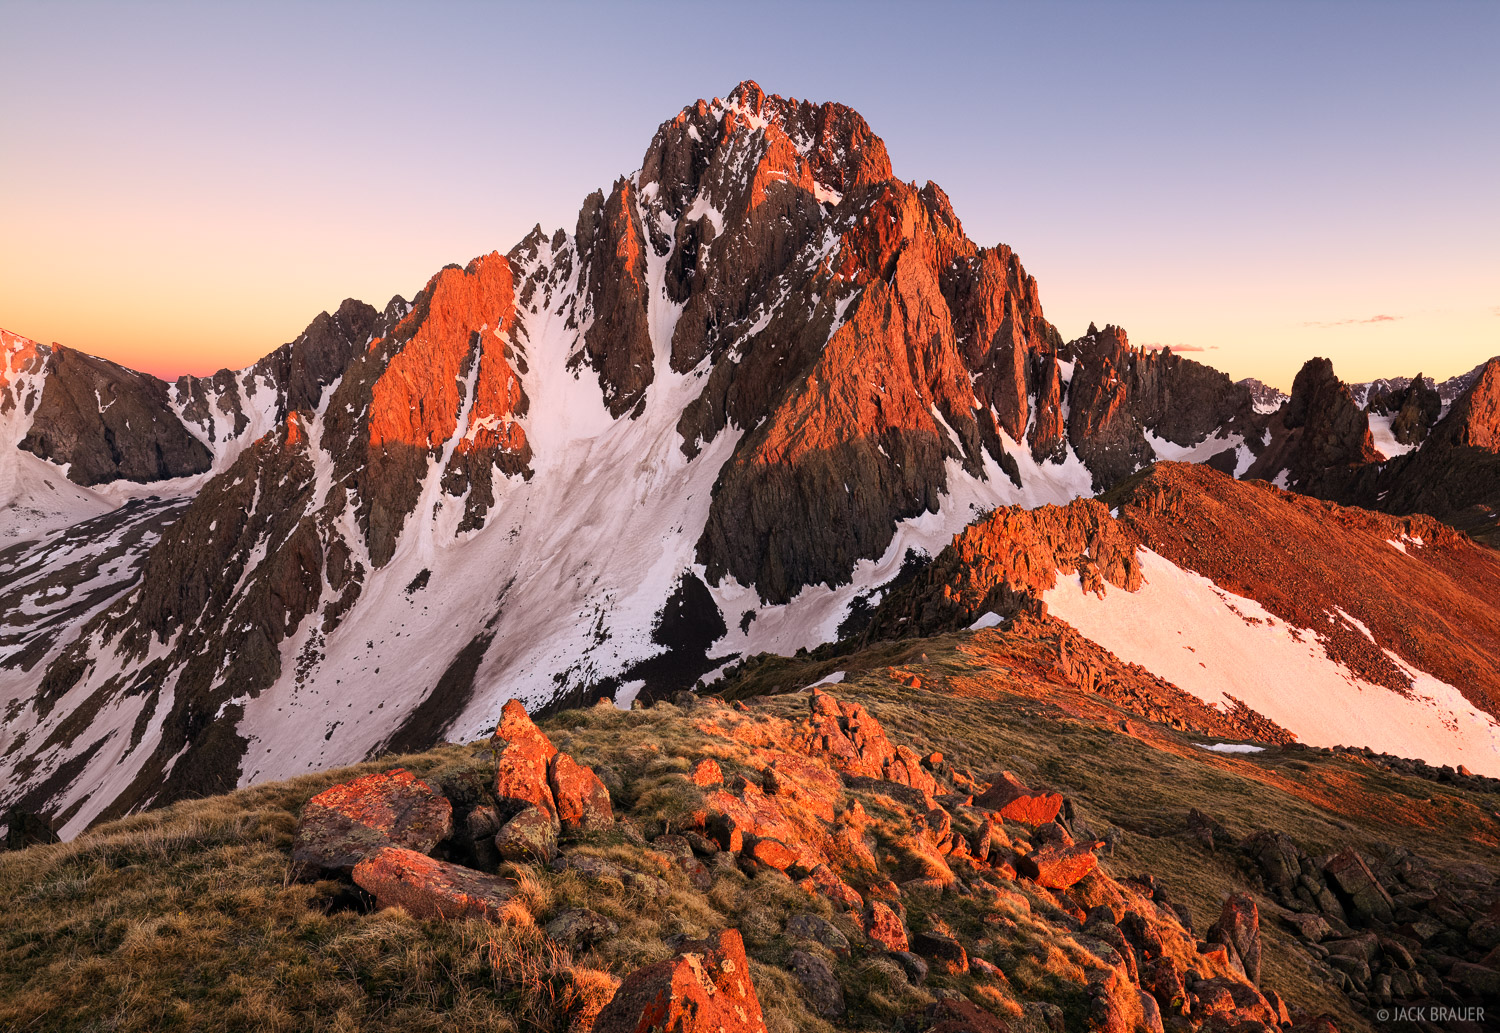 Sunset light illuminates the 14,150 ft. summit of Mt. Sneffels, as seen from a high ridgeline in June, San Juan Mountains.